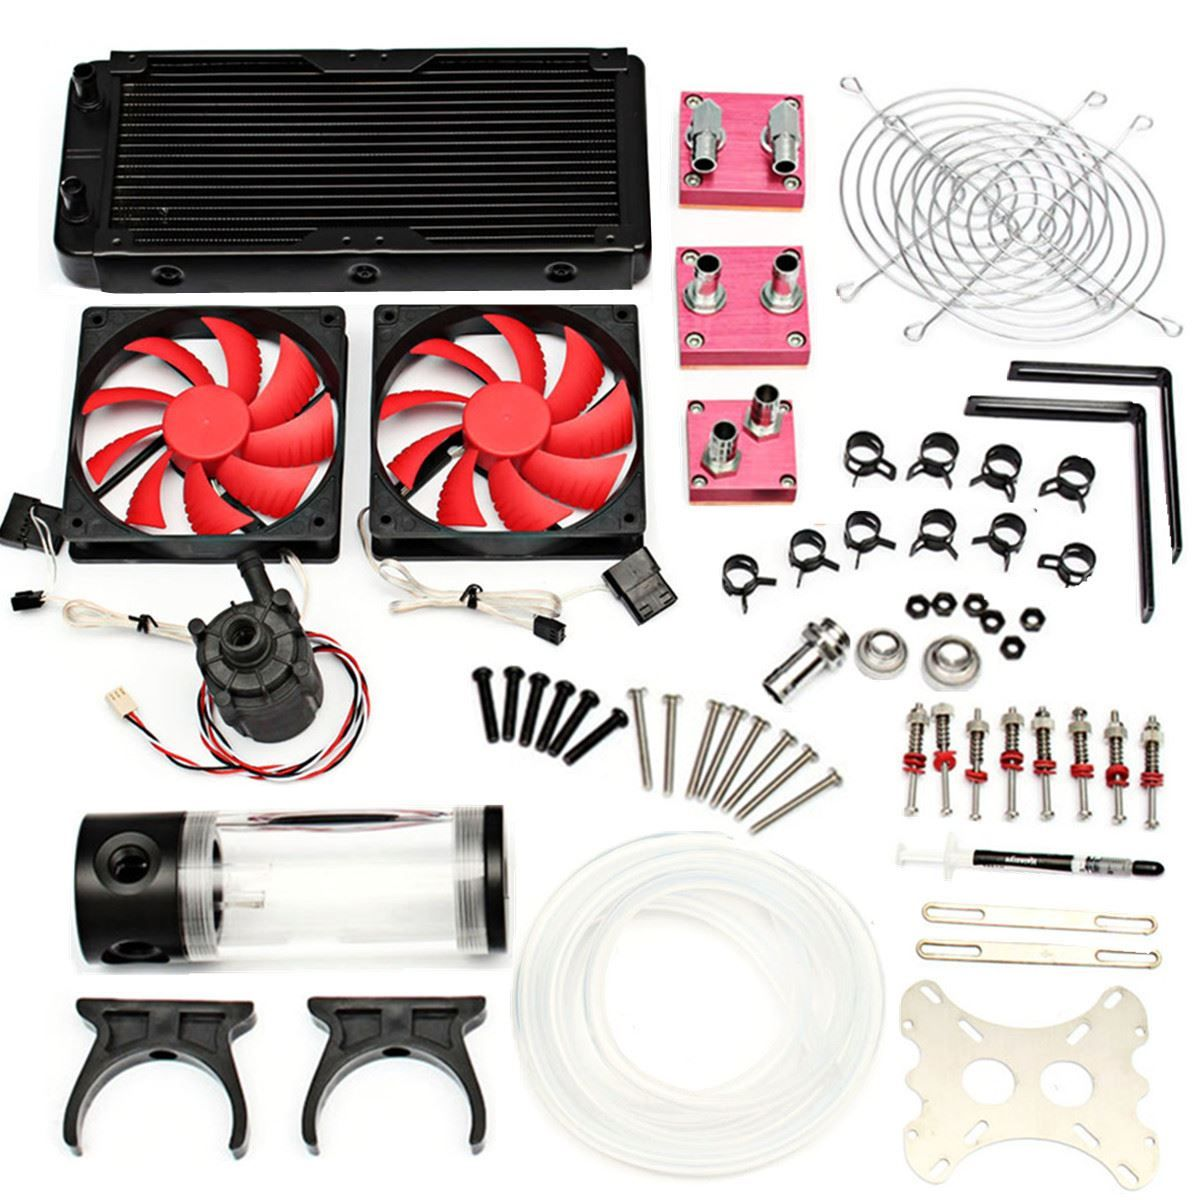 Water Cooling Kit 240 Radiator Cpu Gpu Block Pump Reservoir Tubing